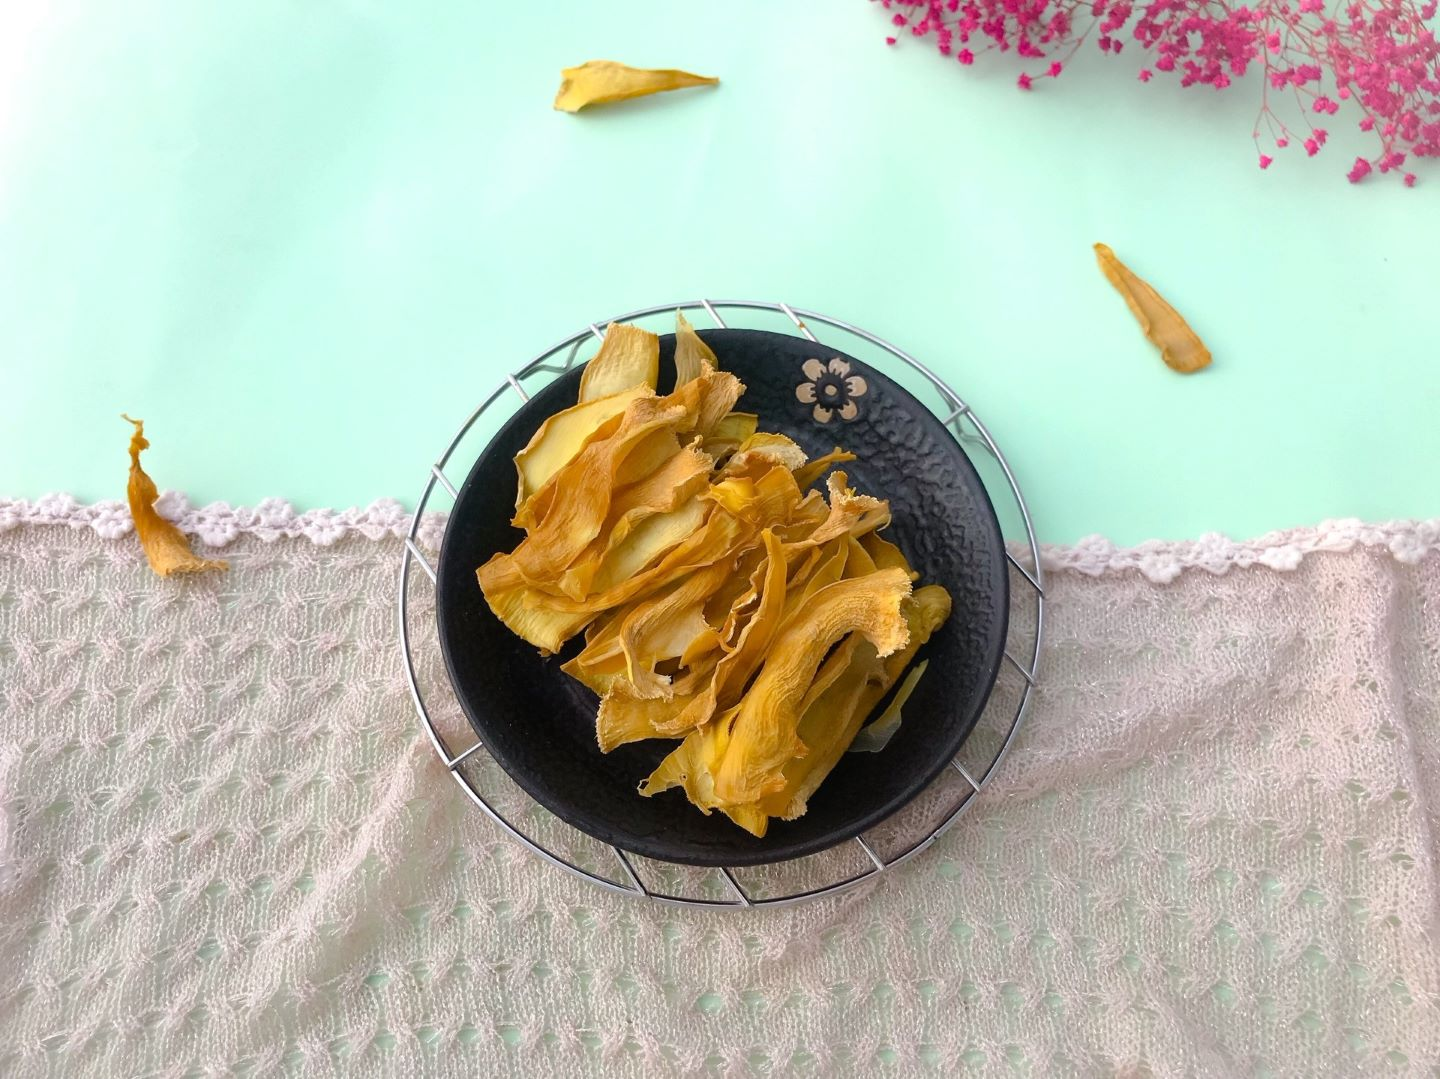 How to make dried bamboo shoots